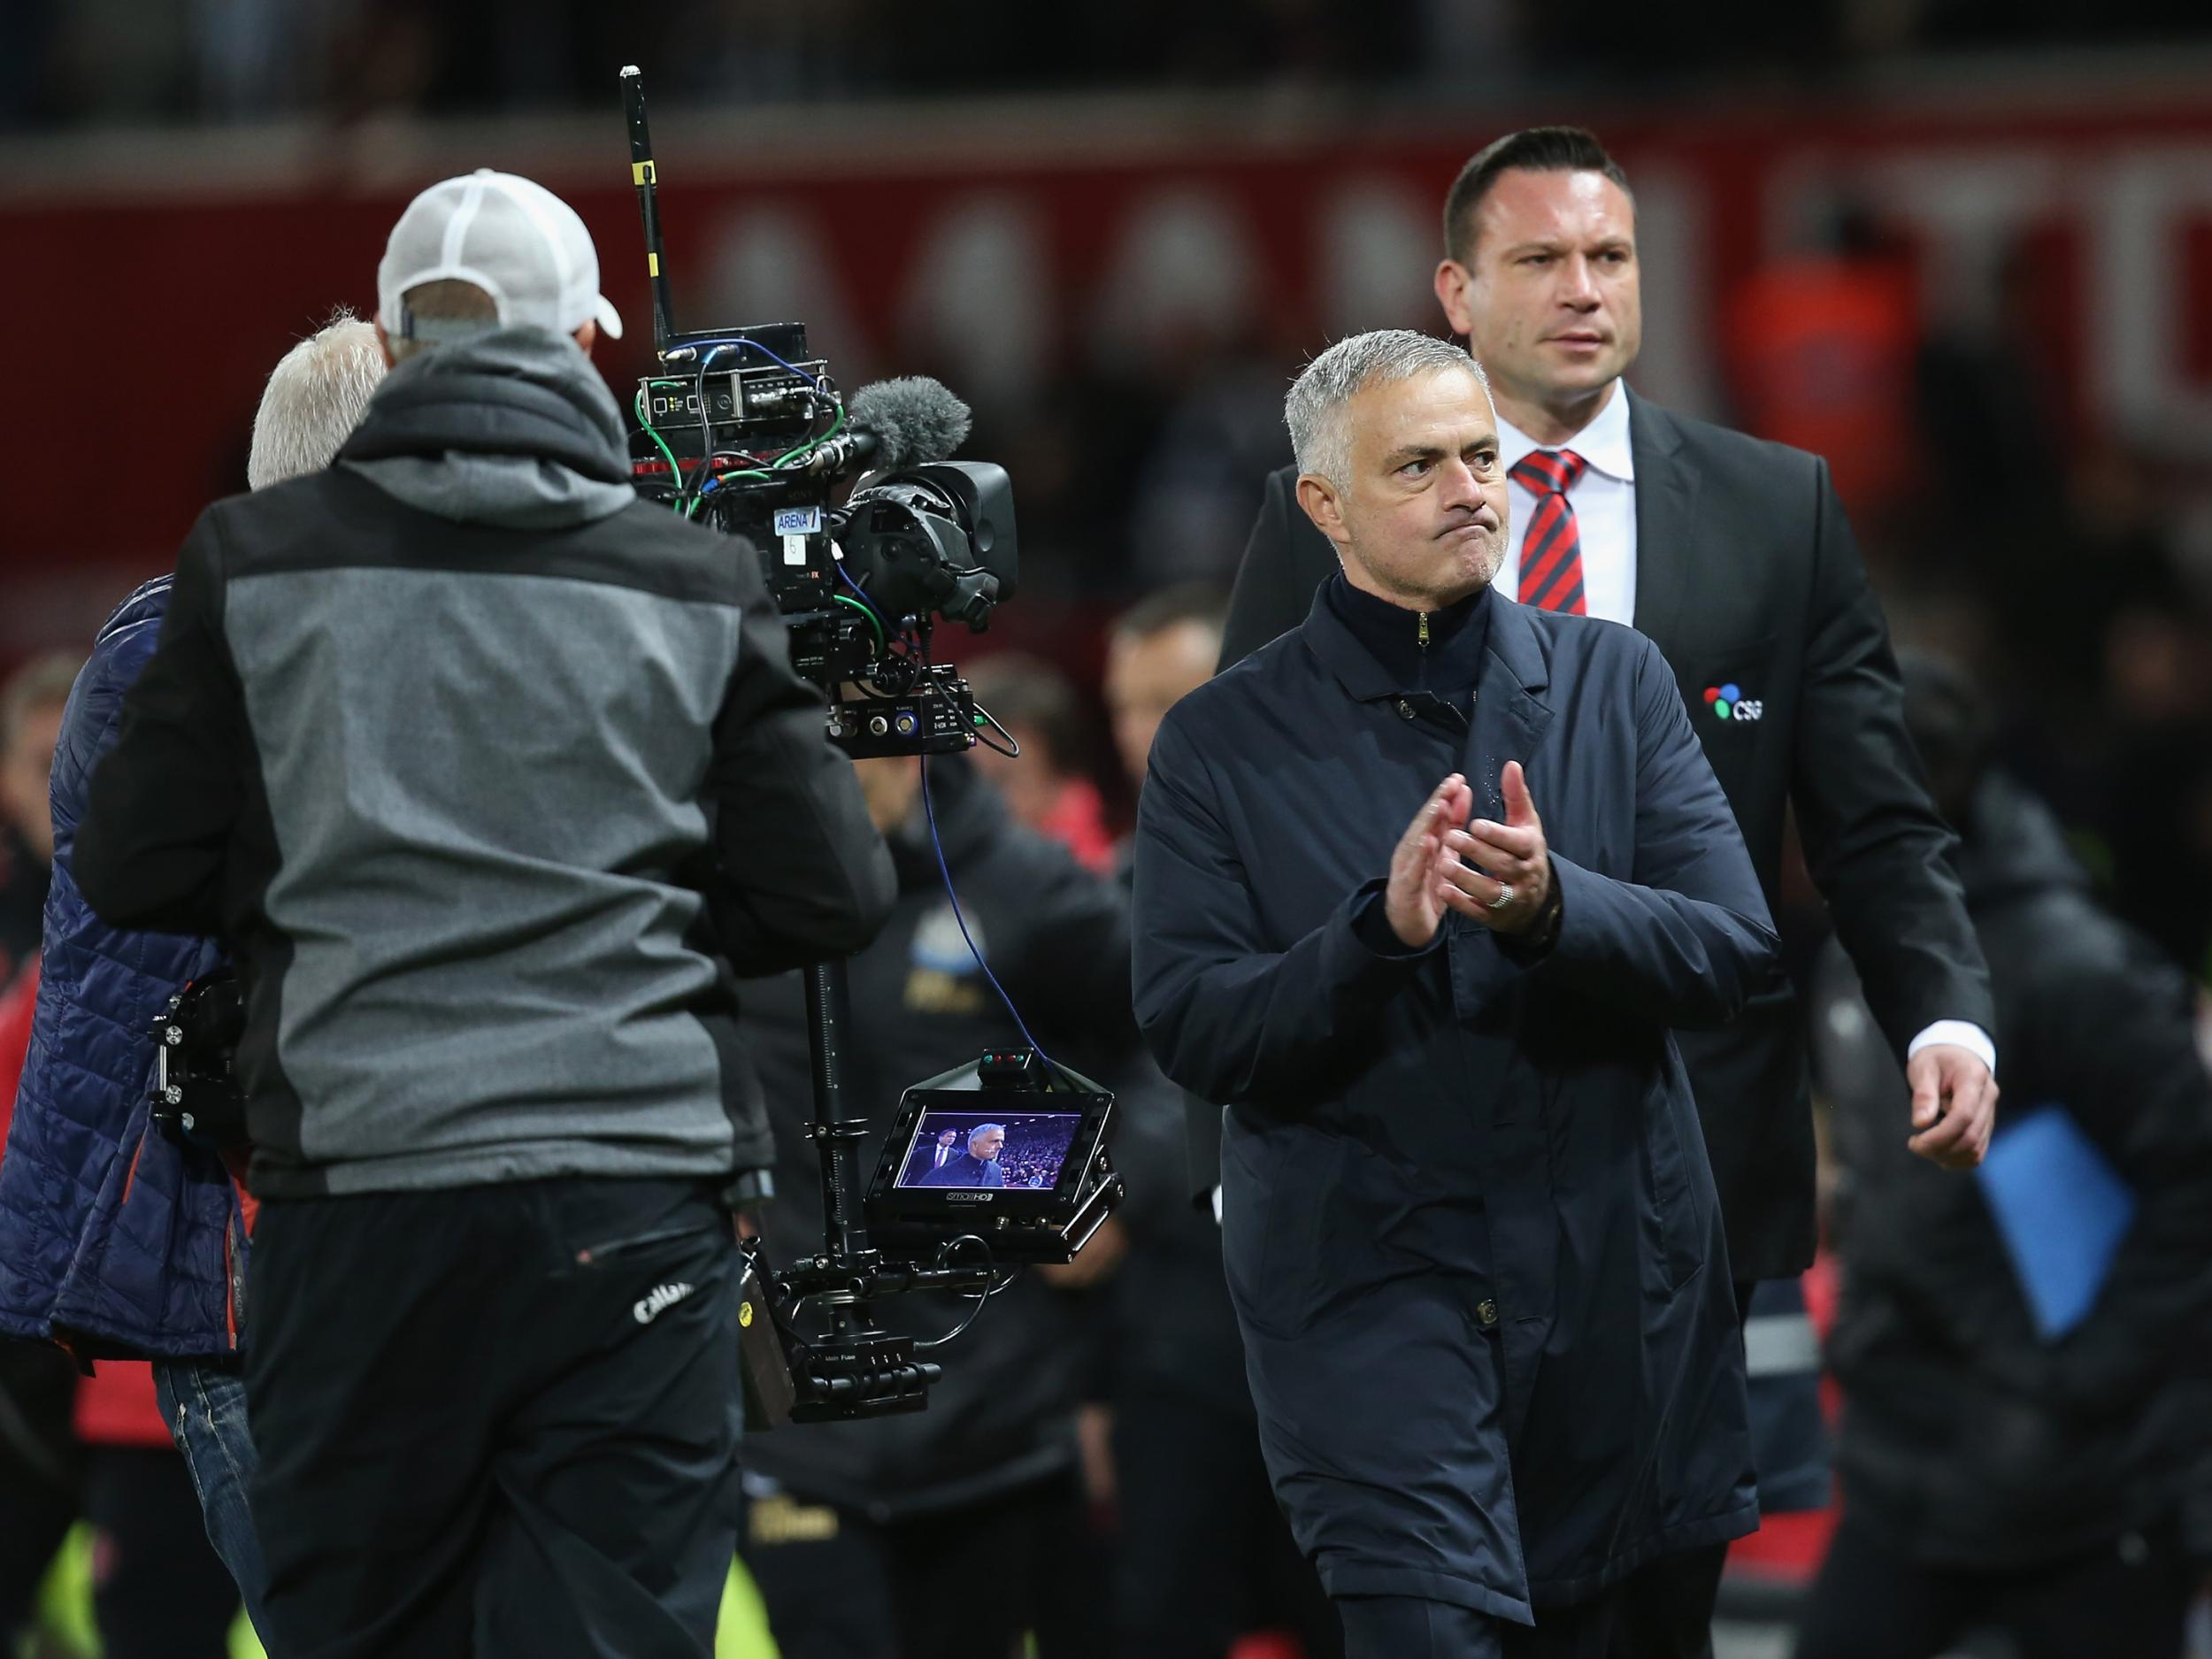 Bournemouth vs Manchester United: Jose Mourinho claims touchline swearing was not offensive